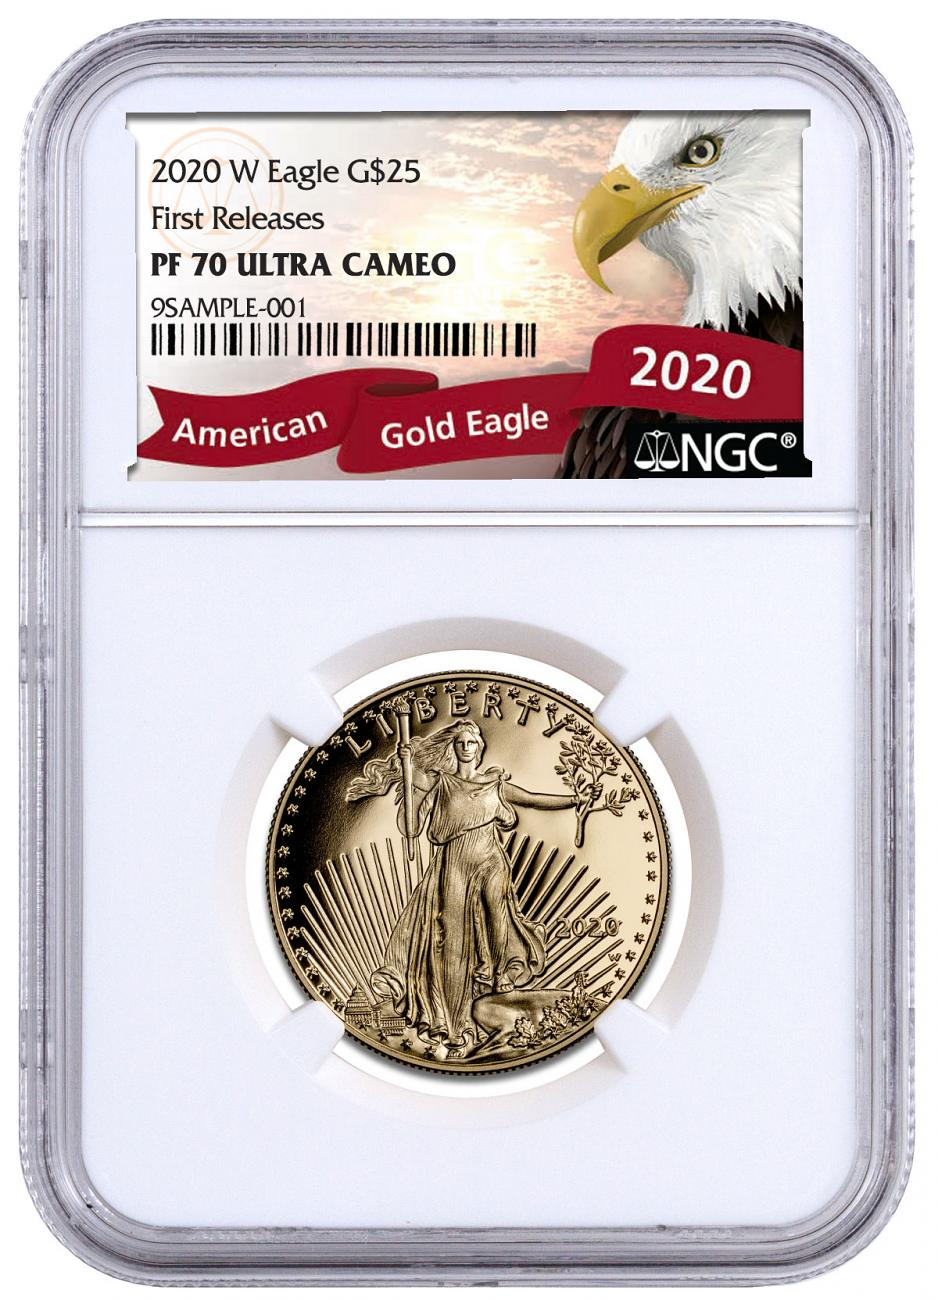 2020-W 1/2 oz Gold American Eagle Proof $25 Coin NGC PF70 UC FR Exclusive Eagle Label